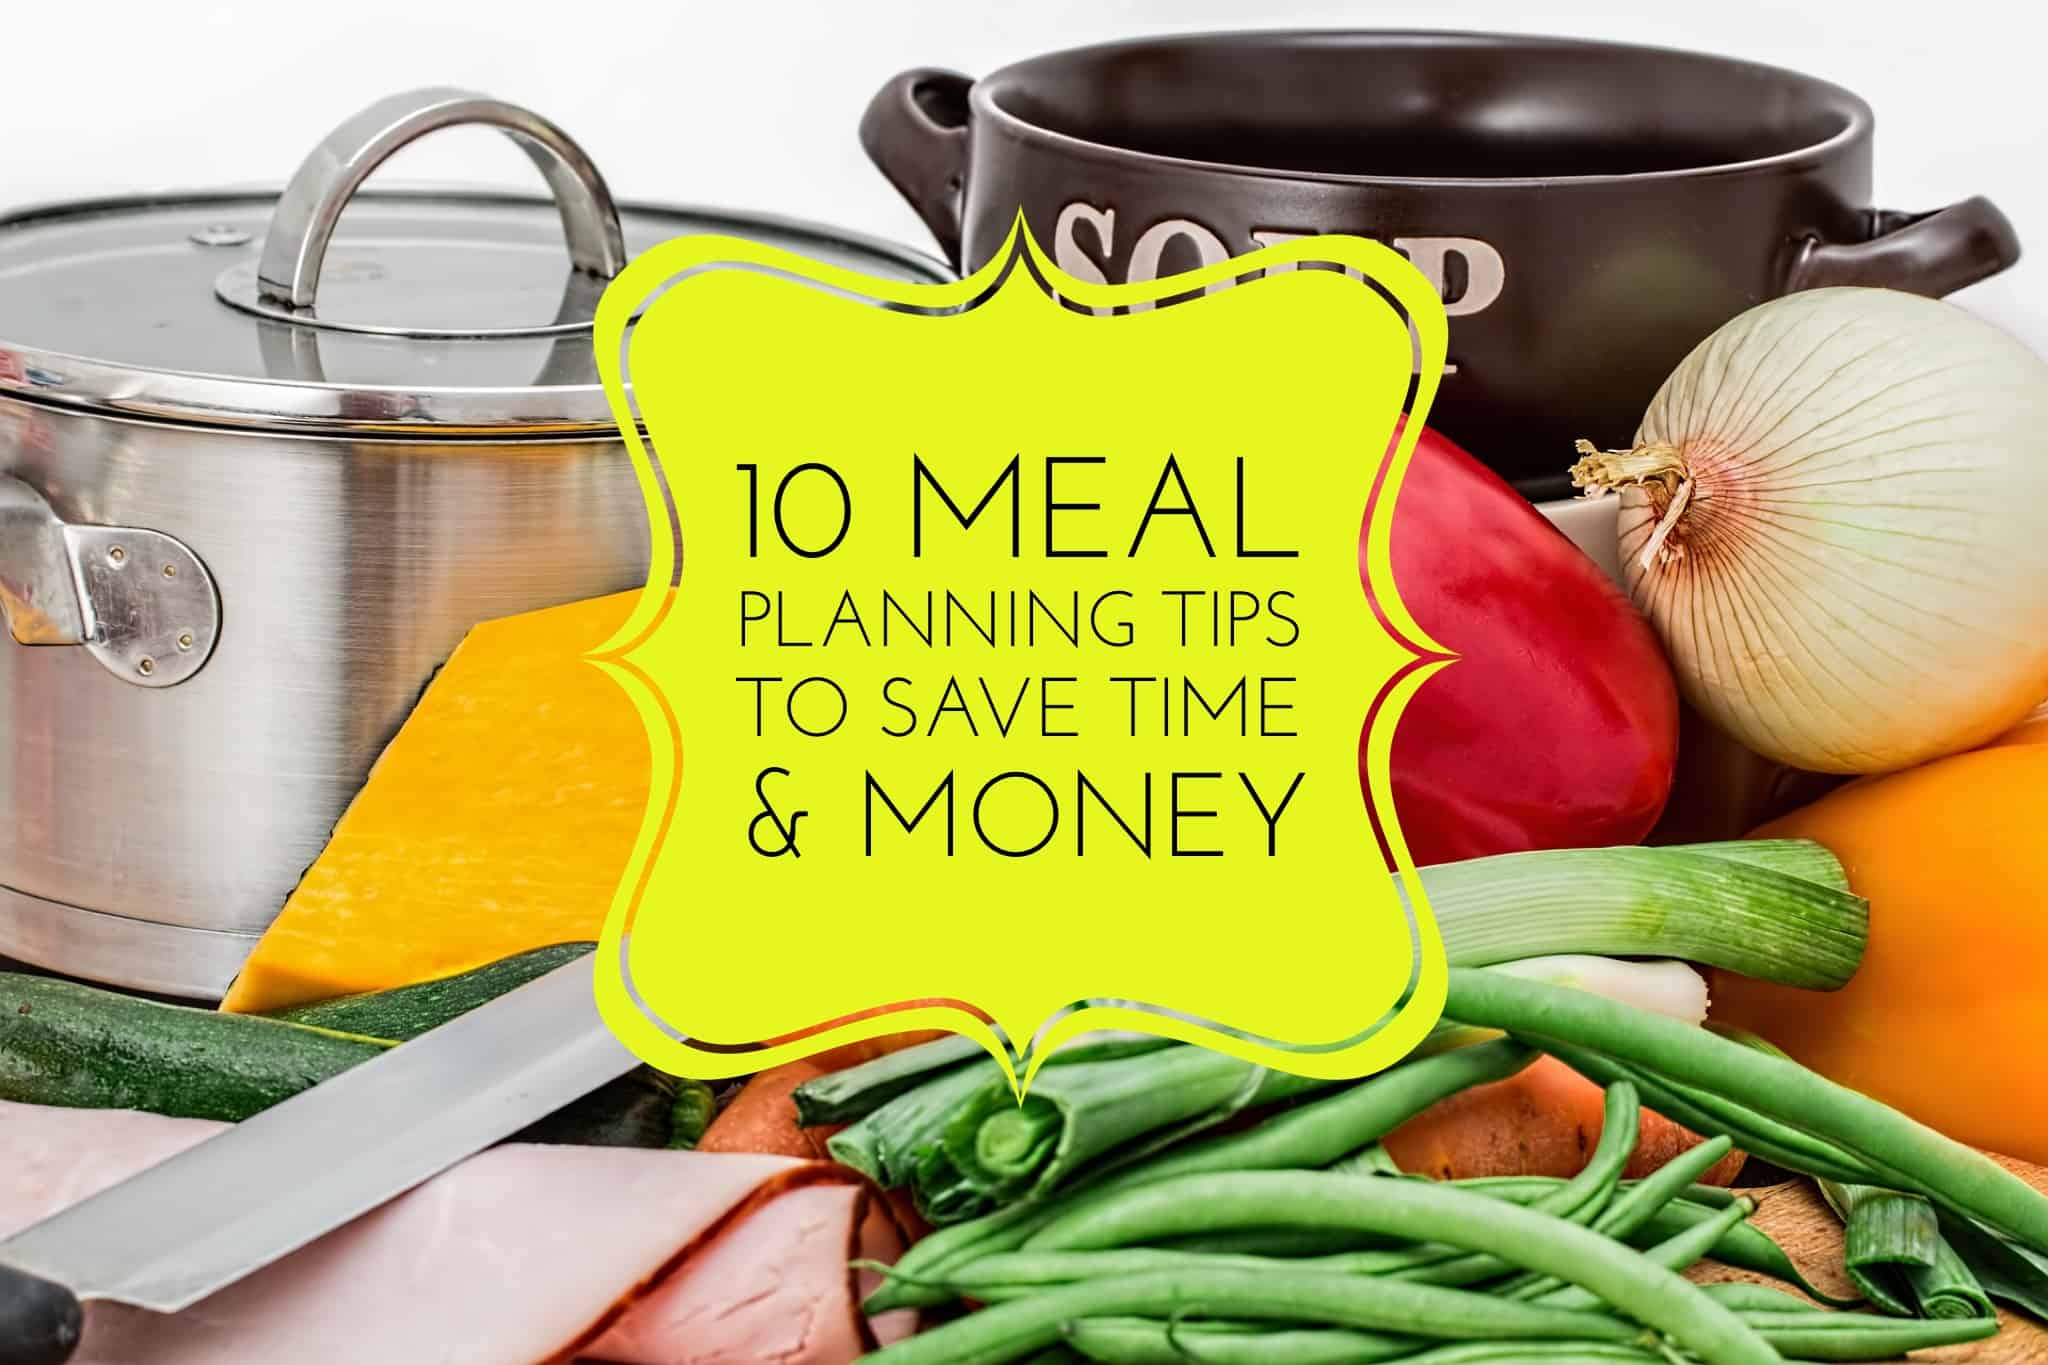 10 Meal Planning Tips to Save Time and Money title